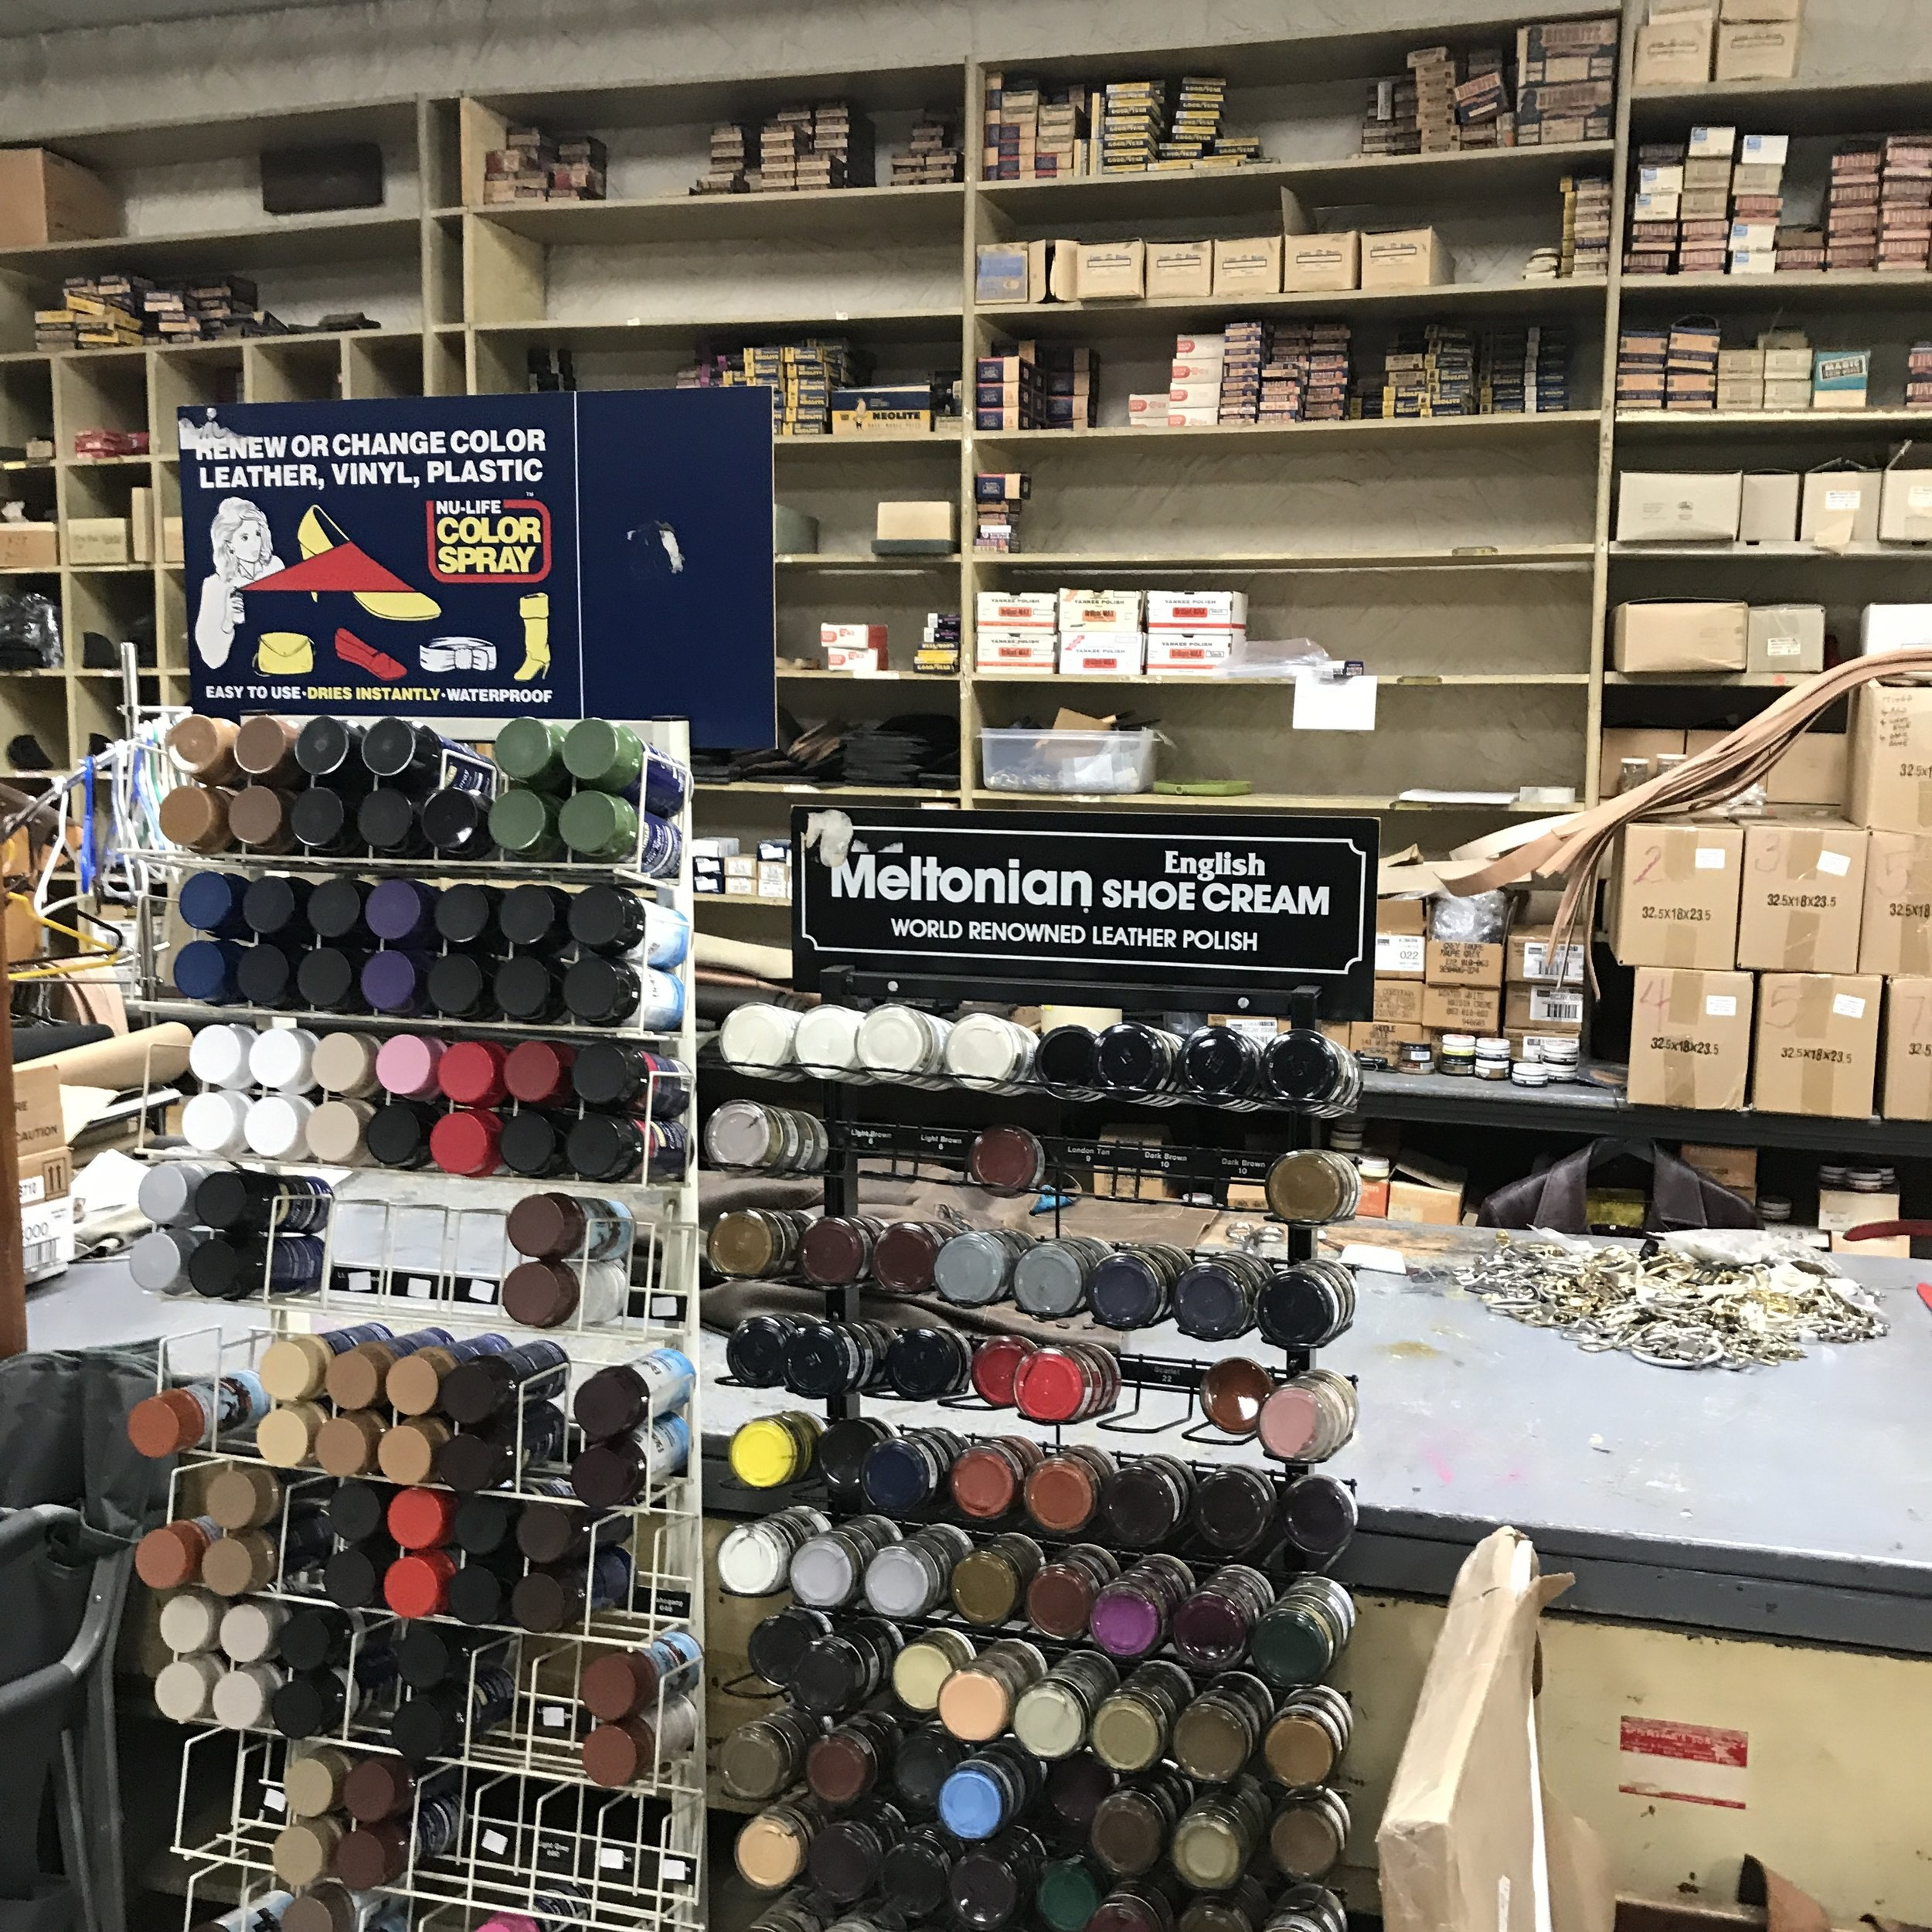 If you are looking for fancy merchandising and displays forget it, but if there is anything you need to complete a project involving leather … this is the place to be…